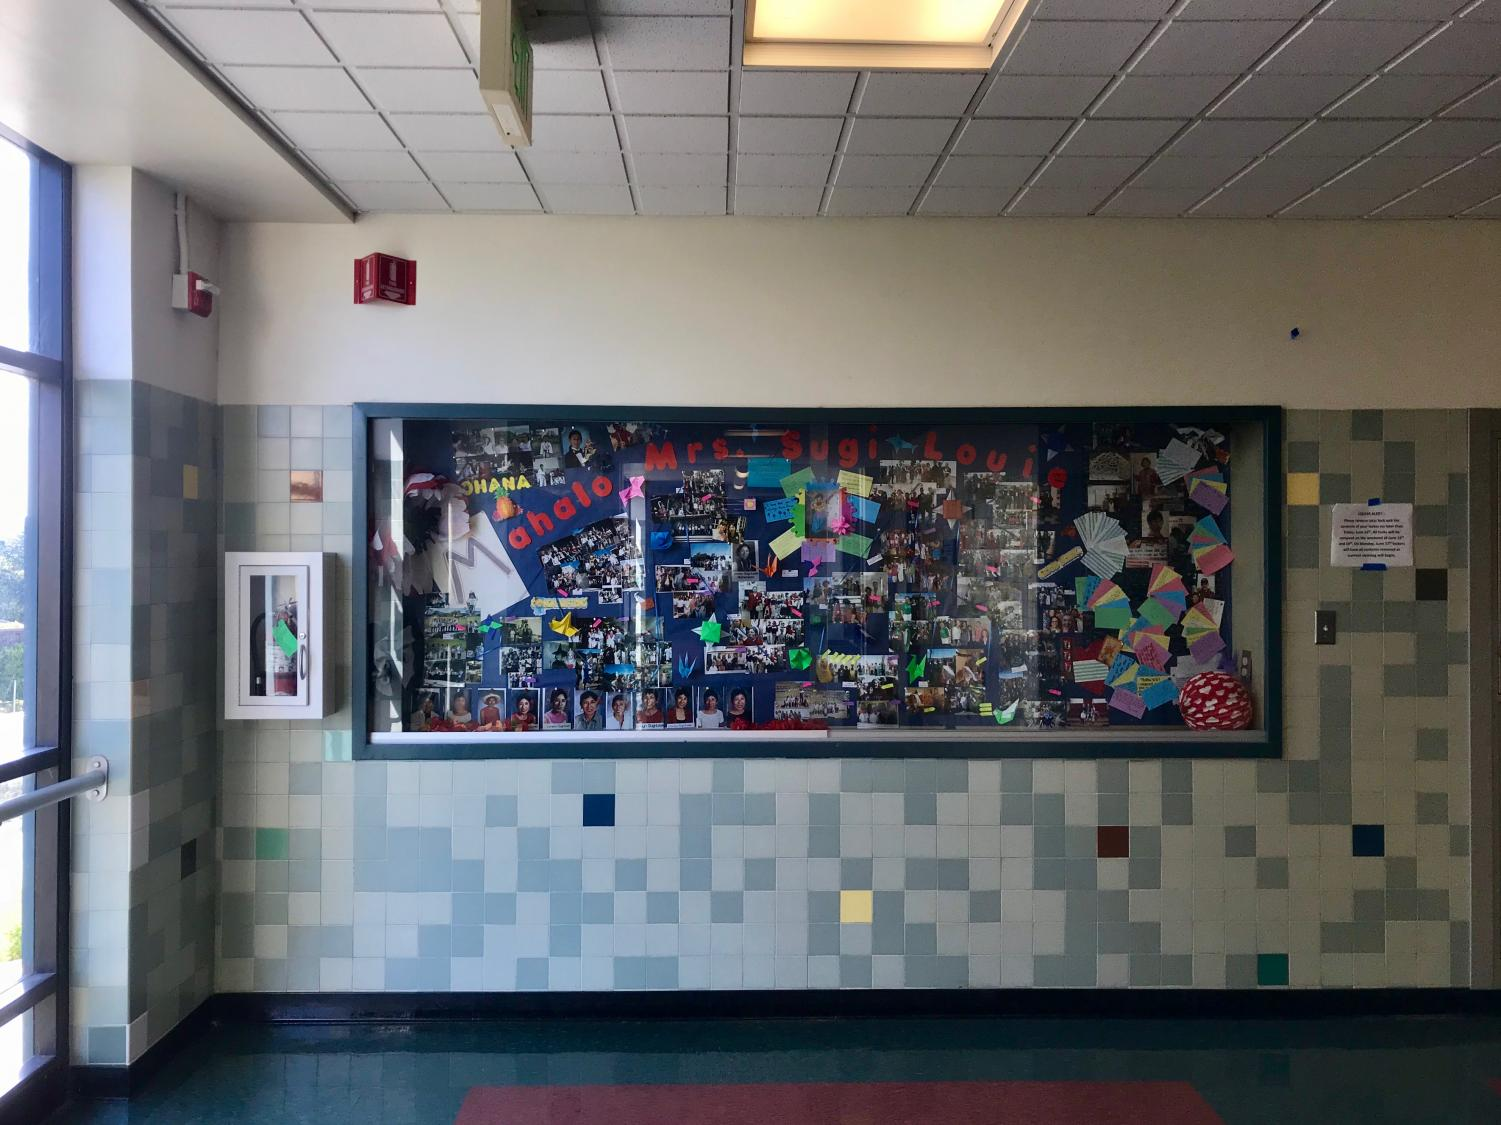 Retiring after many years of teaching math at Redwood, teachers and students decorated the display case to say goodbye to Lovelyn Sugi-Louie.